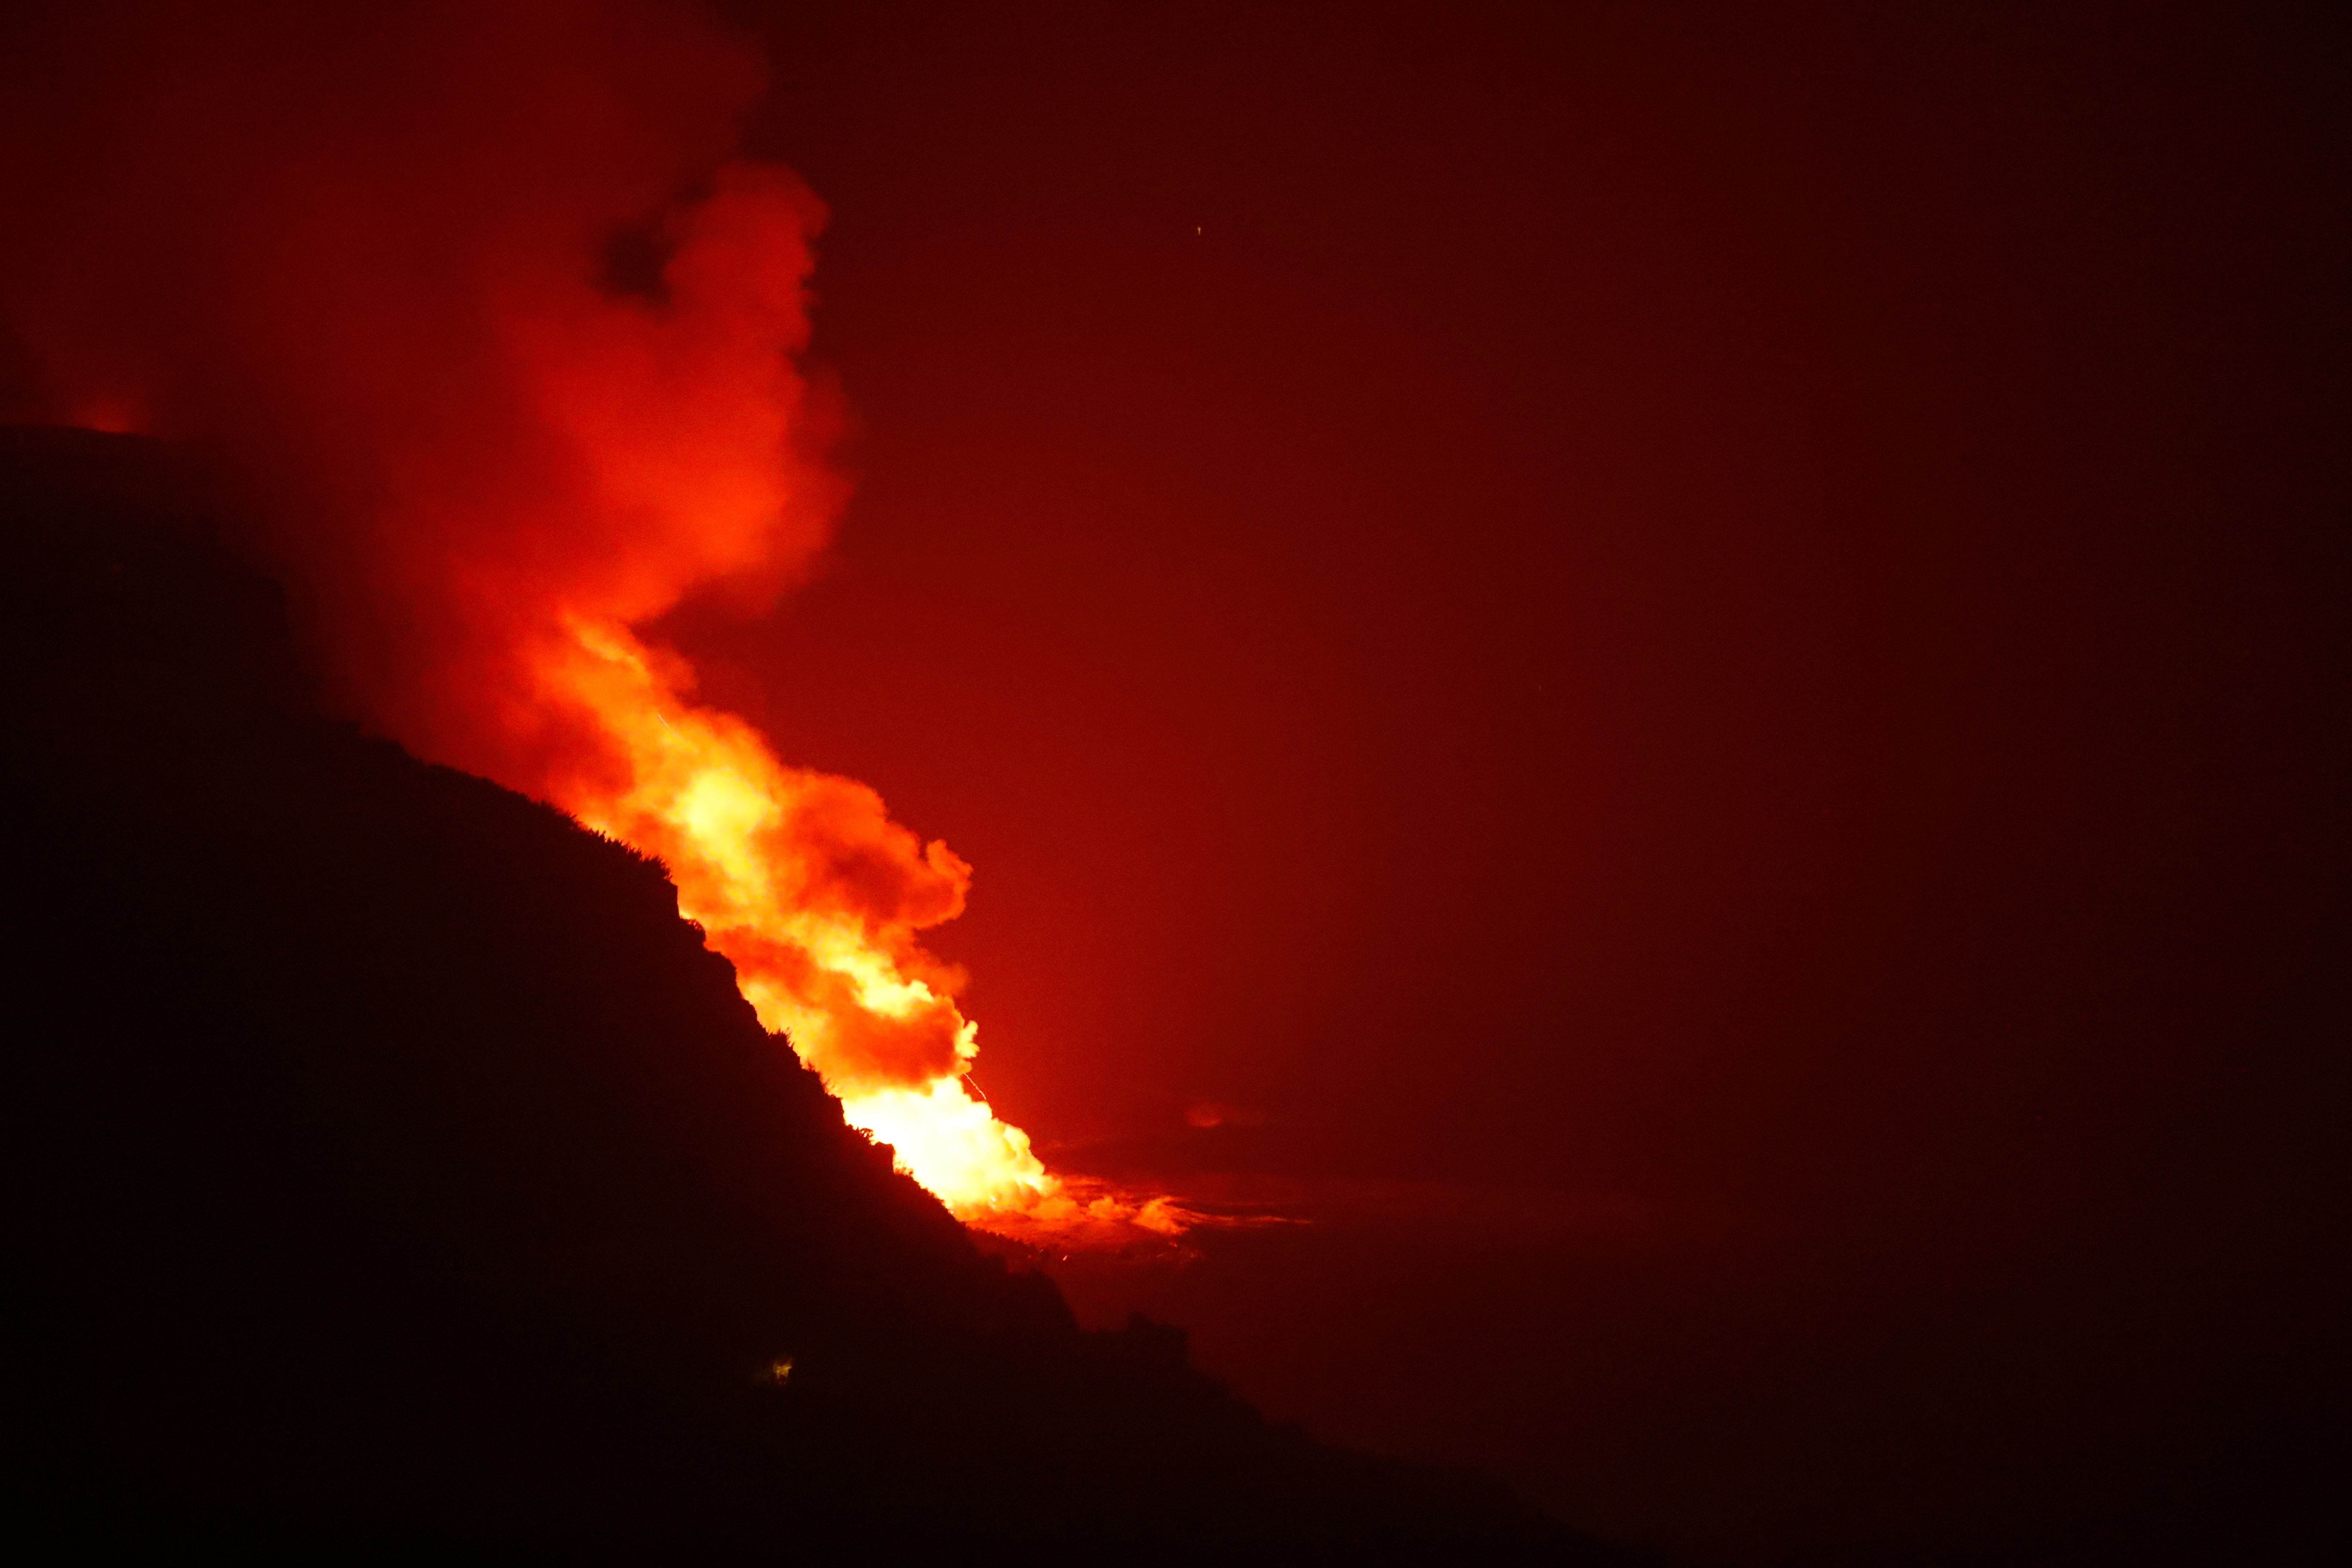 Lava flows into the sea, as seen from Tijarafe, following the eruption of a volcano on the Canary Island of La Palma, Spain, September 28, 2021. REUTERS/Borja Suarez